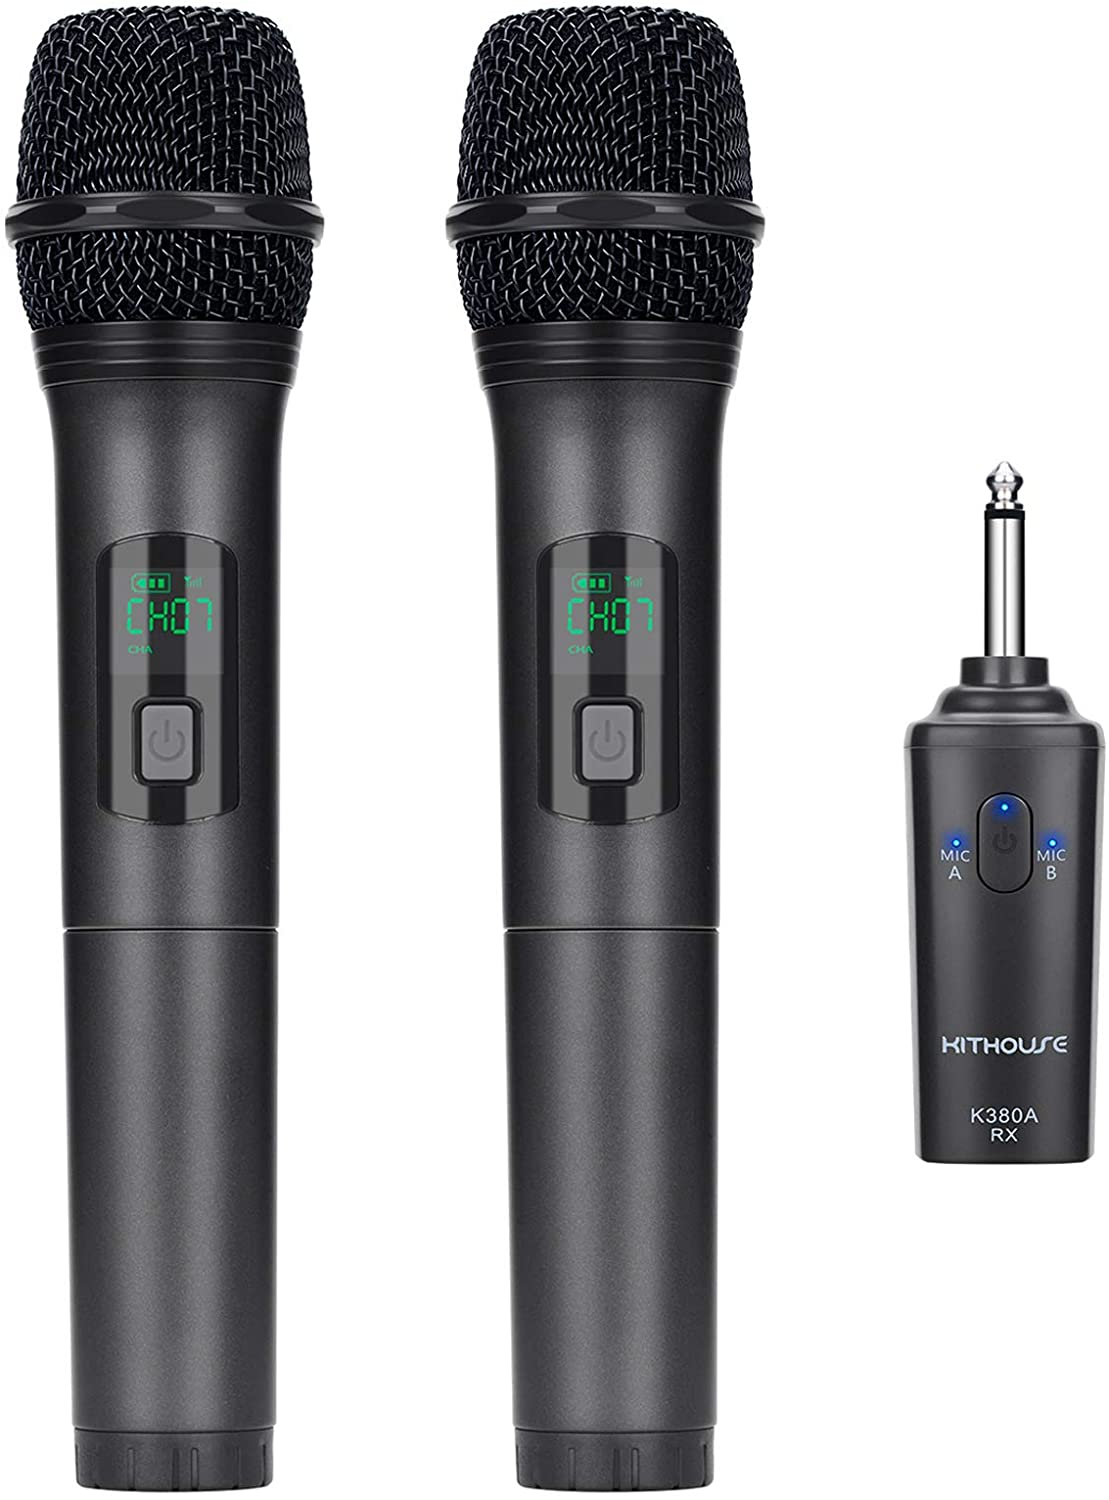 Kithouse K380A Wireless Microphone Karaoke Microphone Wireless Mic Dual With Rechargeable Bluetooth Receiver System Set - UHF Handheld Cordless Microphone For Singing Speech Church(Elegant Black): Musical Instruments